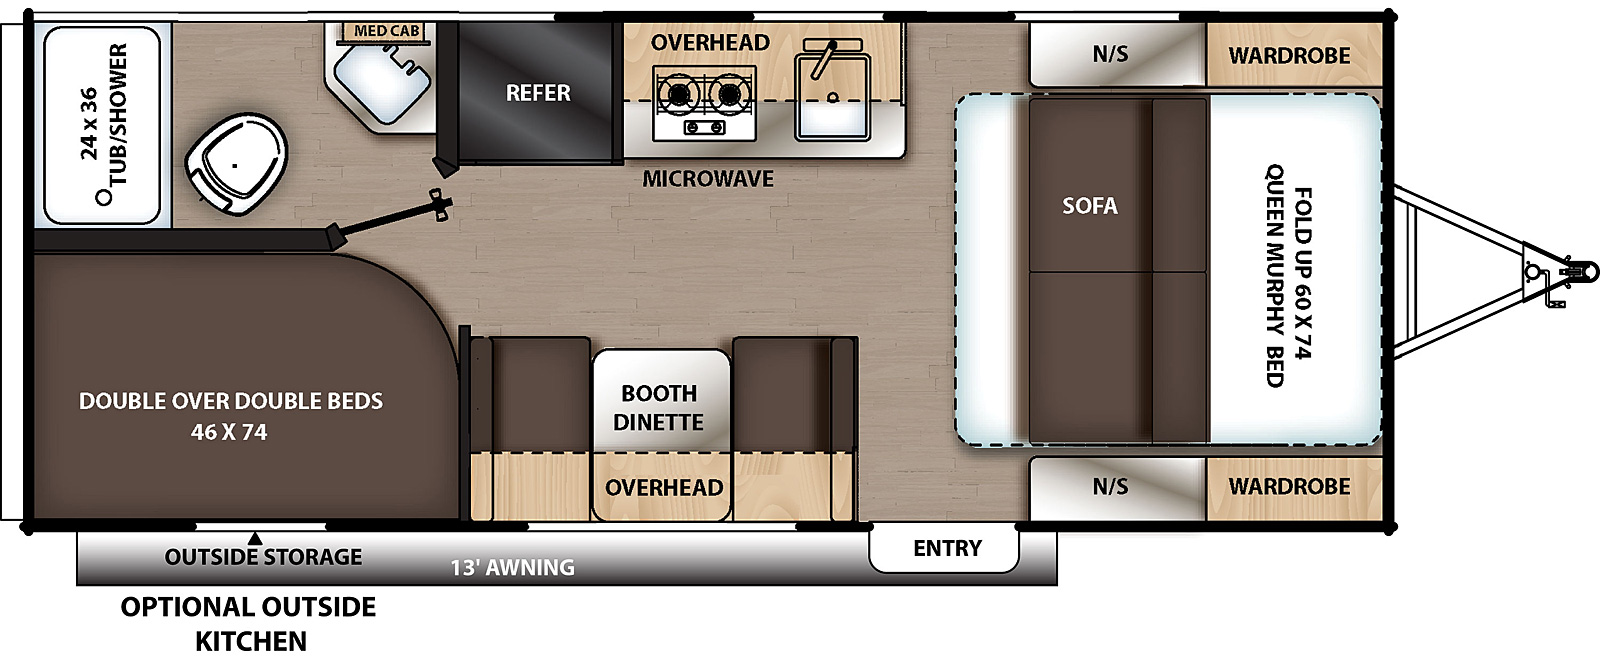 Floorplan for Catalina Summit Series 7 Travel Trailer model 184DBK